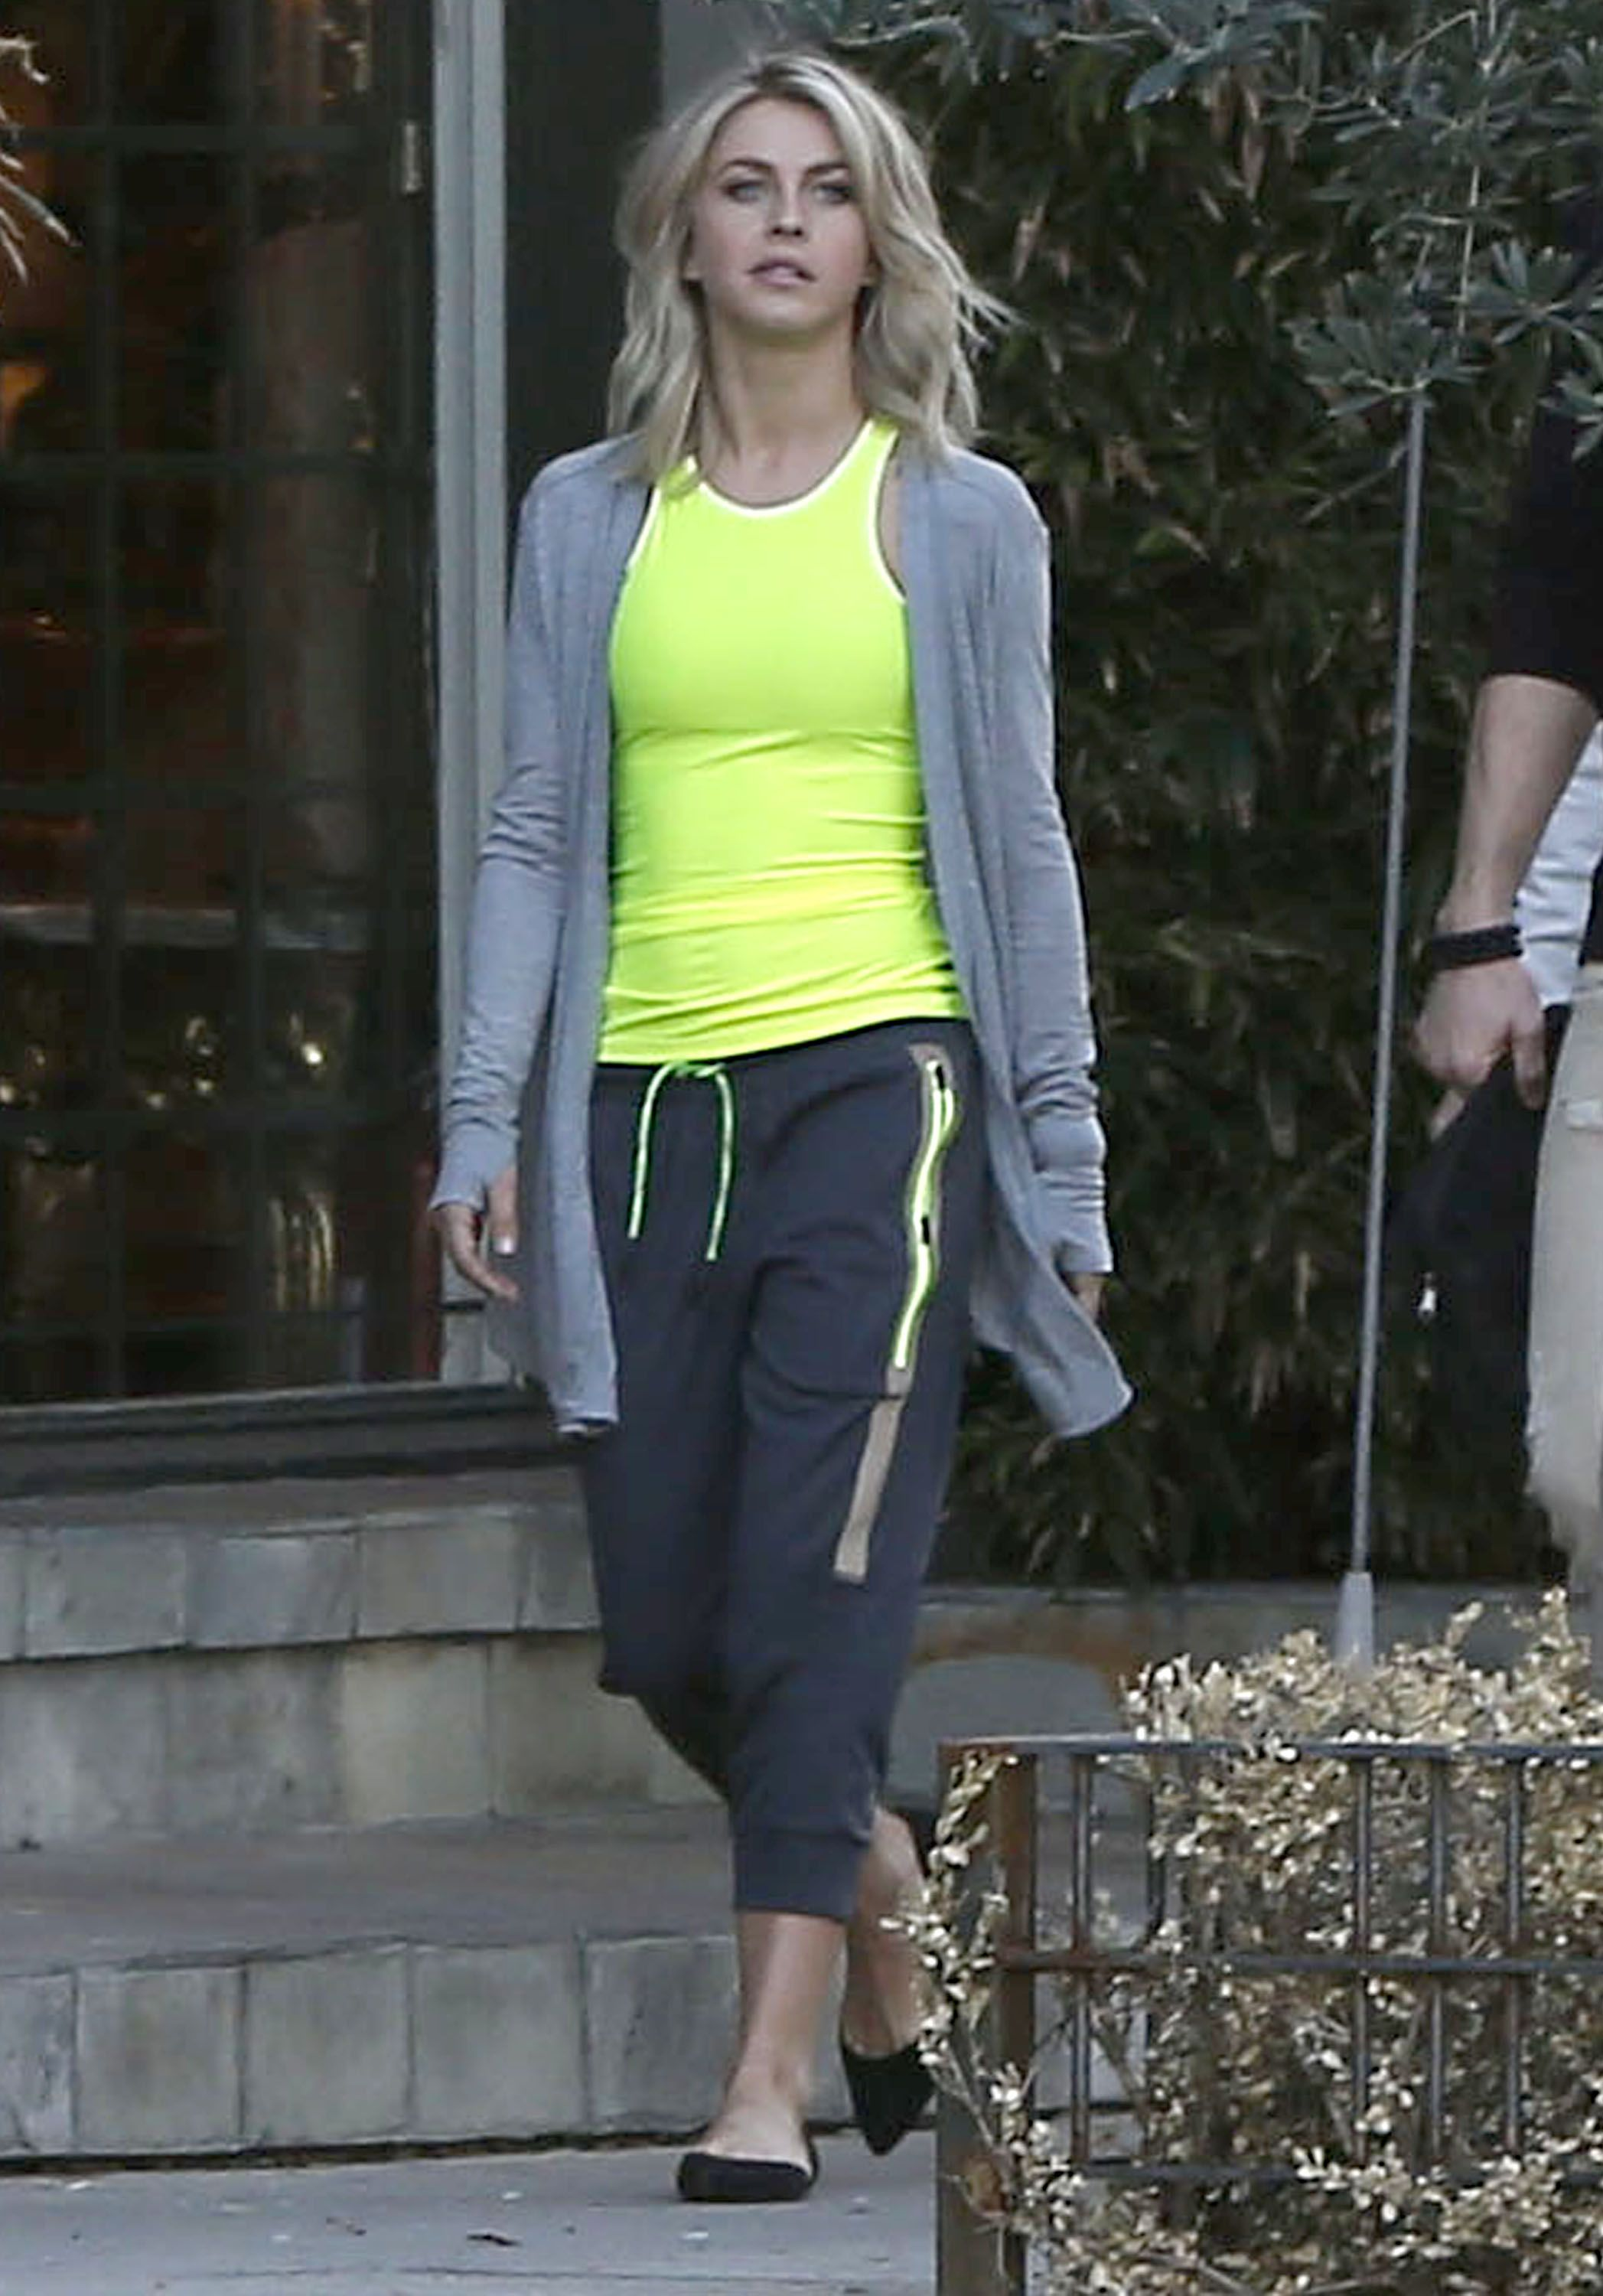 hollywood style ladies workout clothes hipster julianne hough doing photoshoot in west hollywood 2316 proform smart strider 735 elliptical trainer